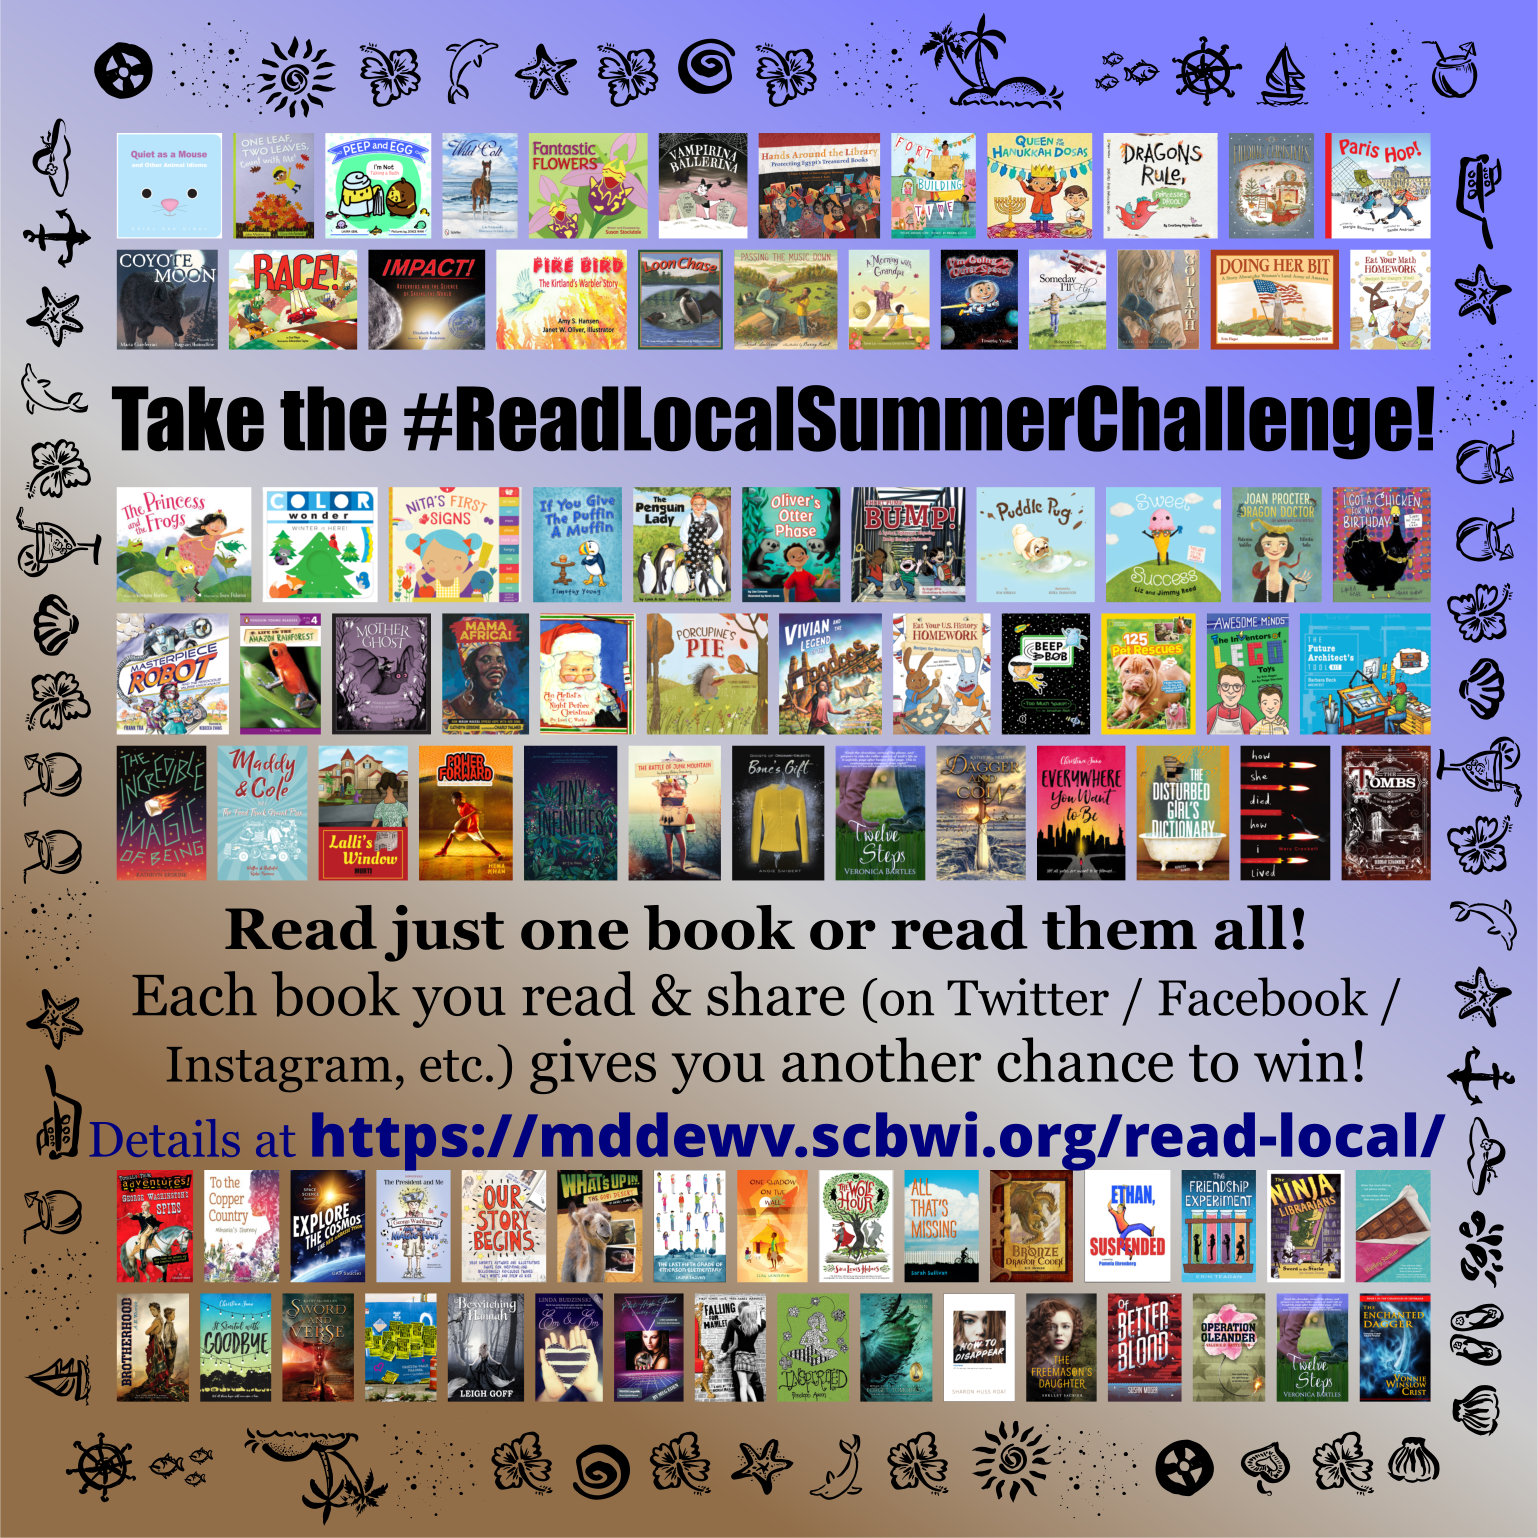 ReadLocal2018_SummerChallenge_md.jpg